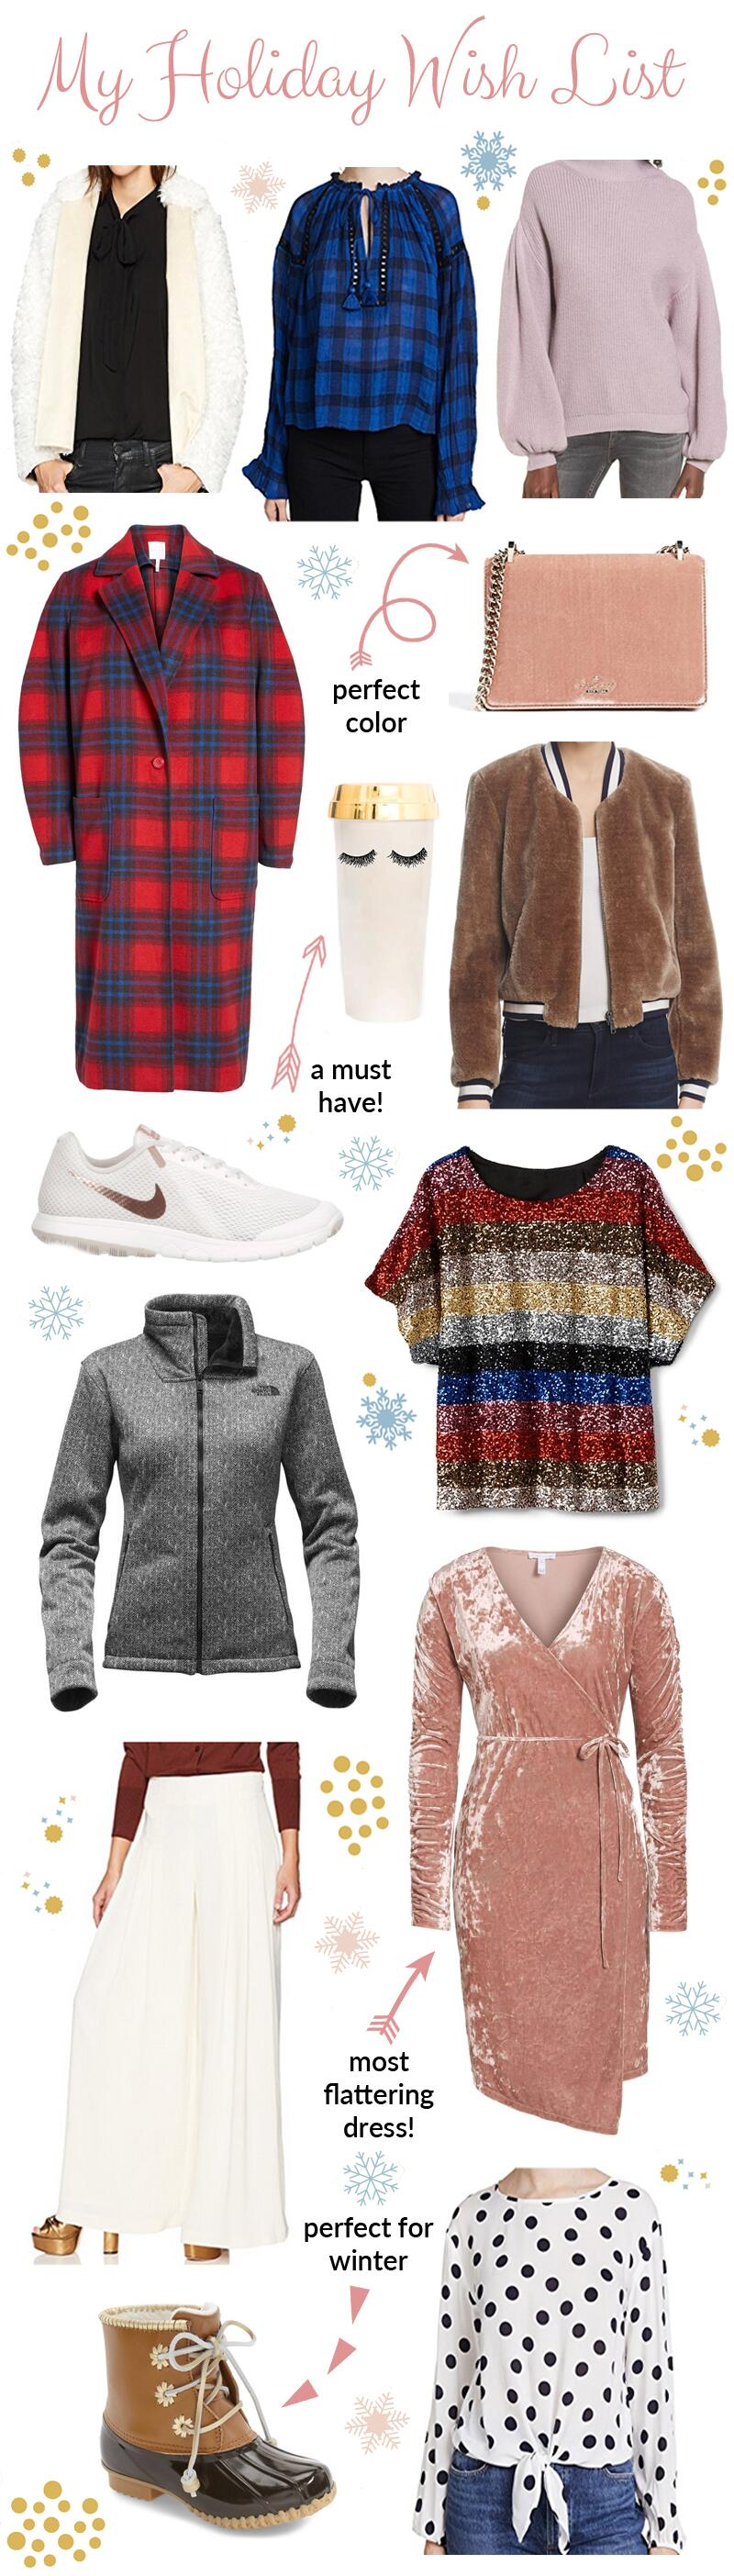 My Holiday Wish List by East Memphis style blogger Walking in Memphis in High Heels